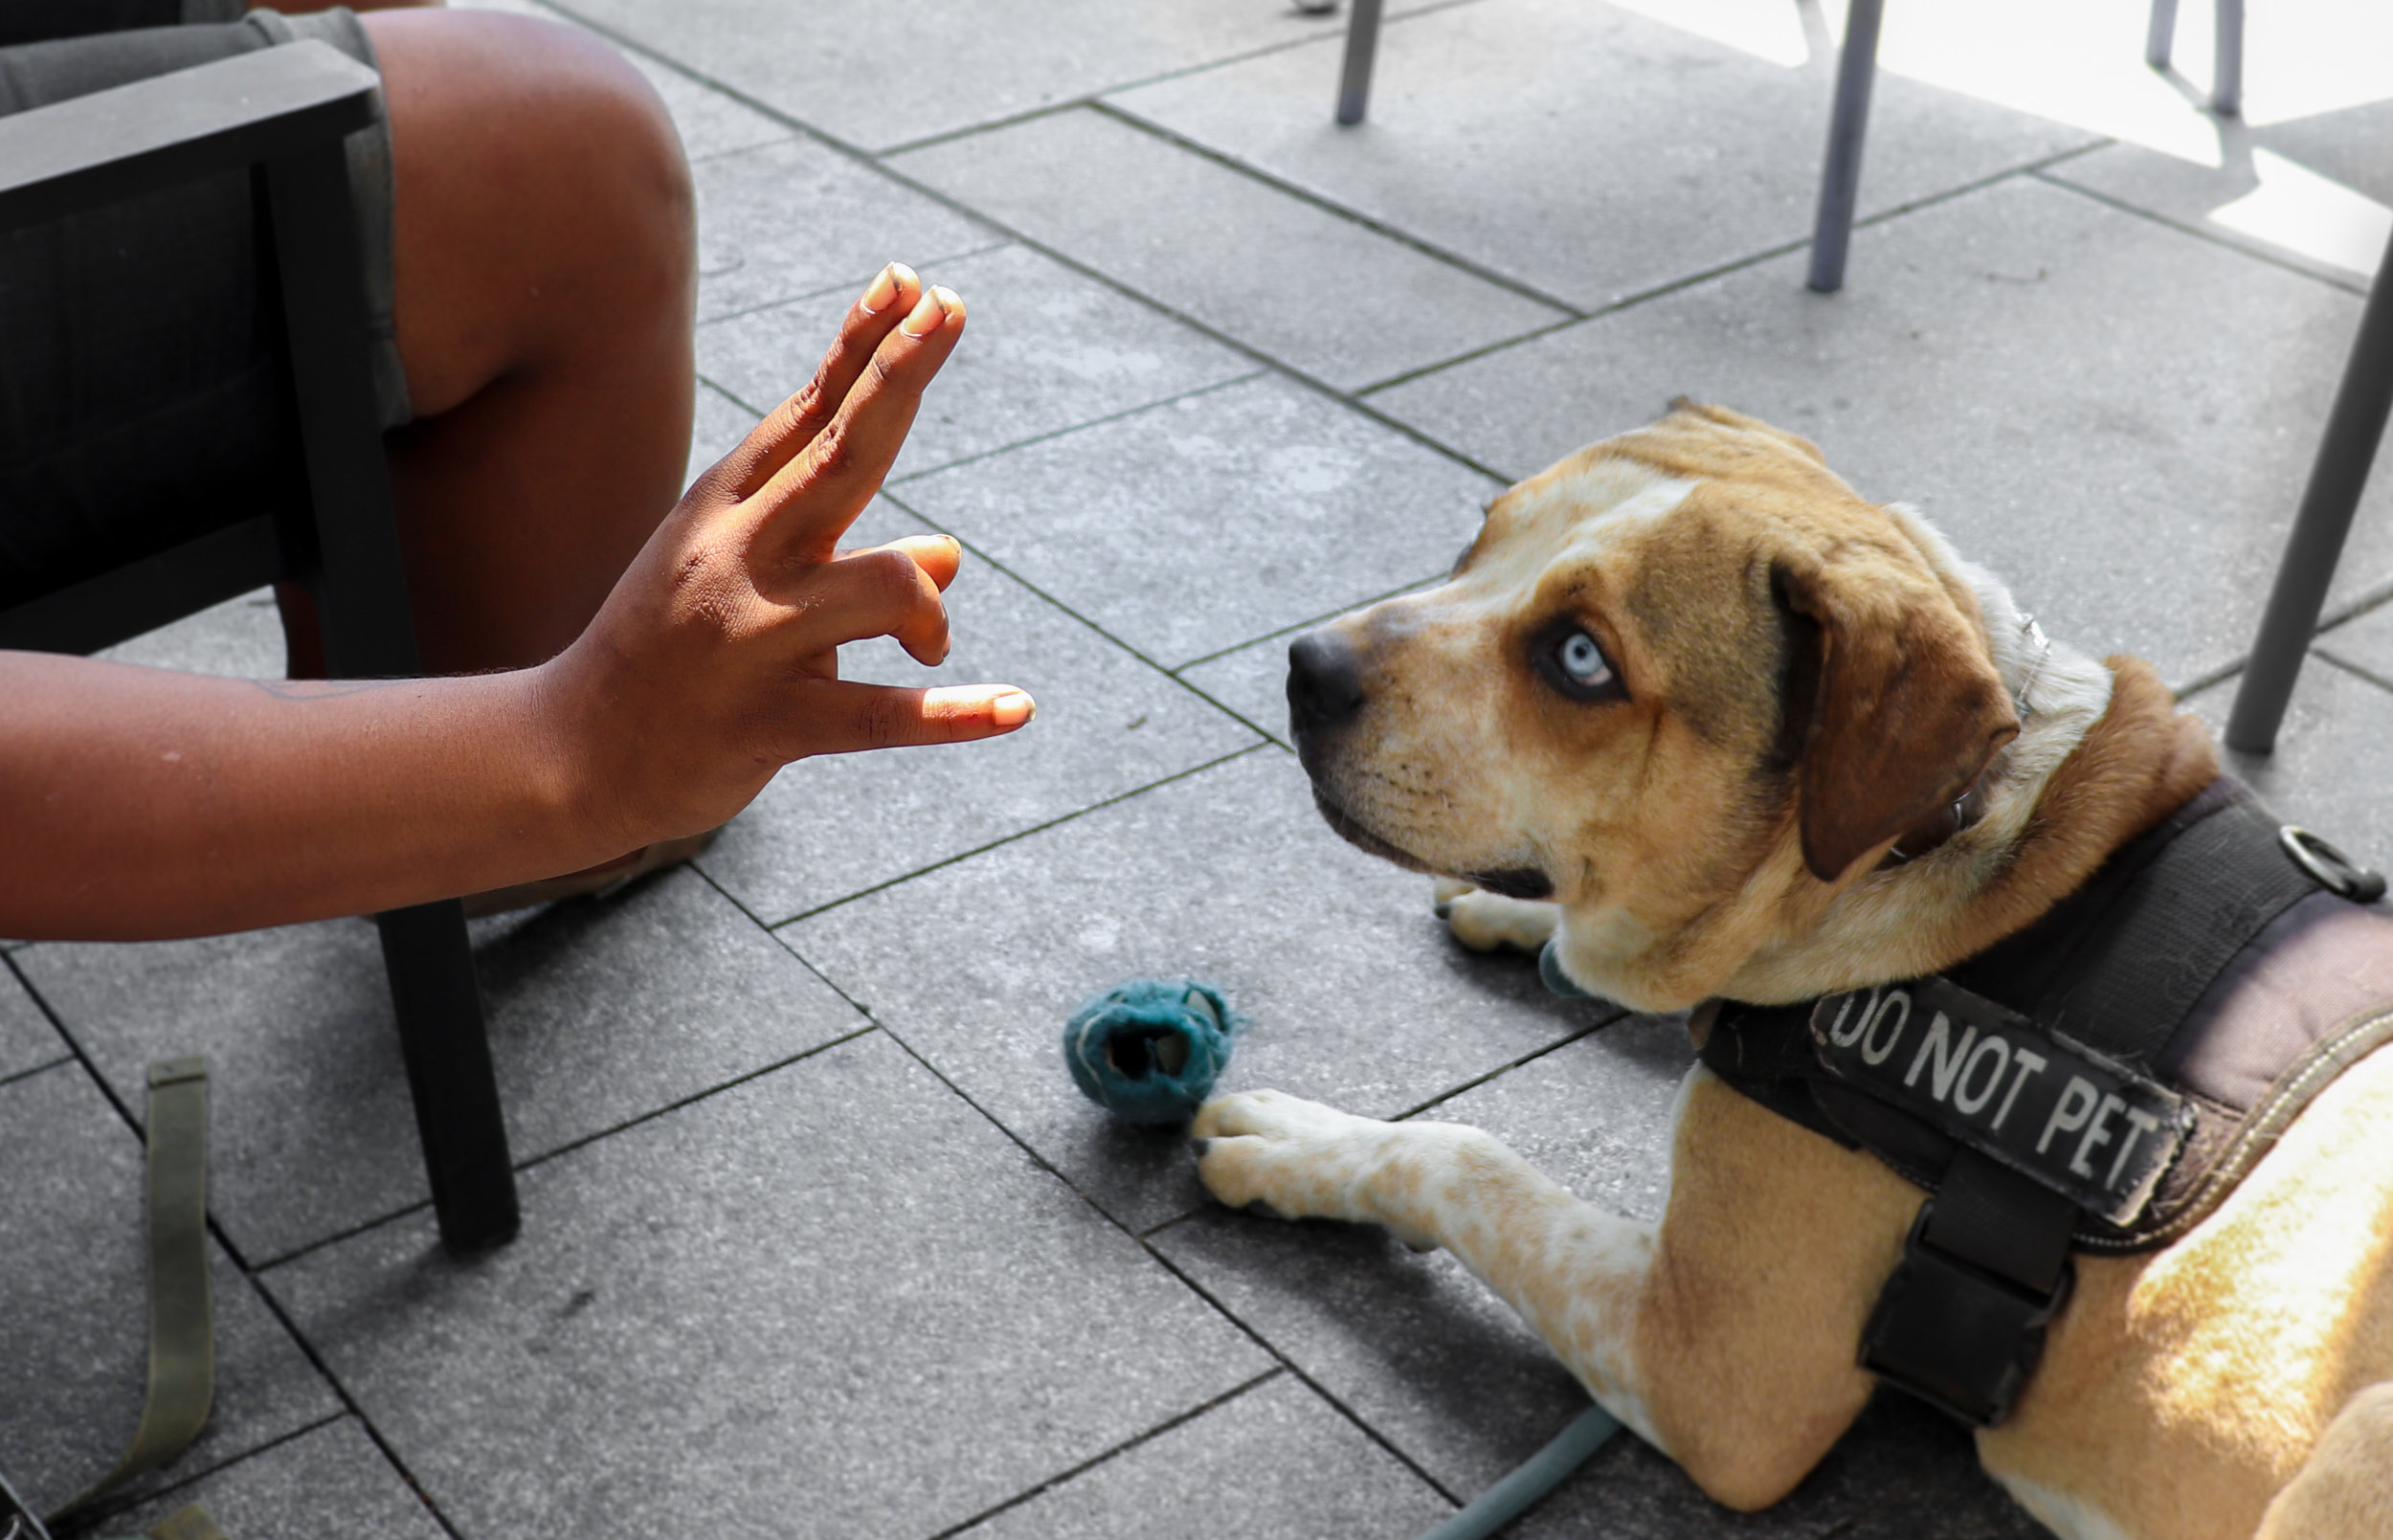 Calypso gestures to her dog, Shy Guy (named after the Super Mario character) outside of a Whole Foods Market.